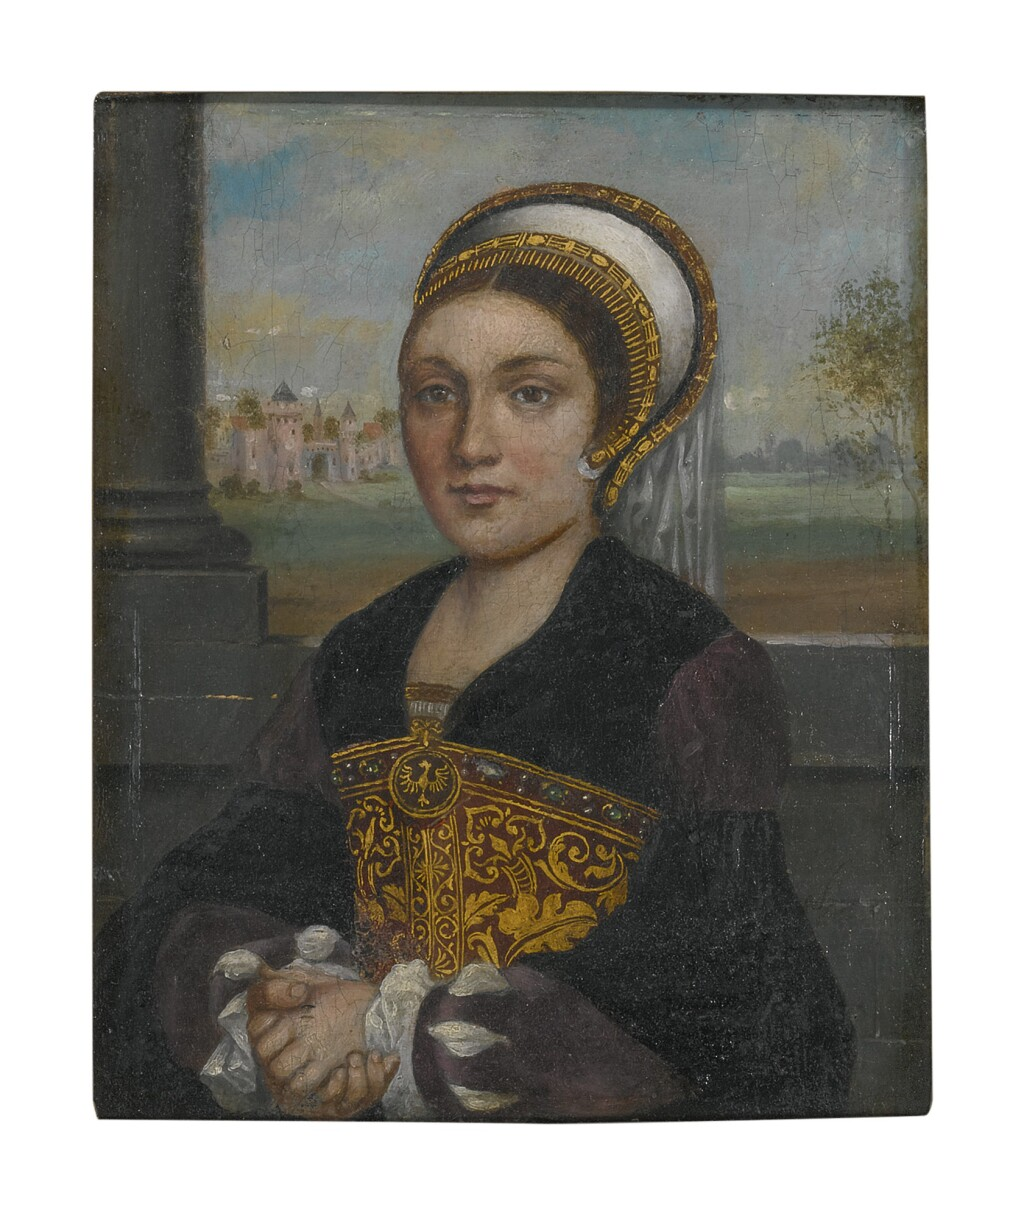 MANNER OF HANS HOLBEIN, CIRCA 1900   PORTRAIT OF A LADY, HALF LENGTH, WITH AN ELABORATE FRENCH HOOD AND VEIL, FACING LEFT